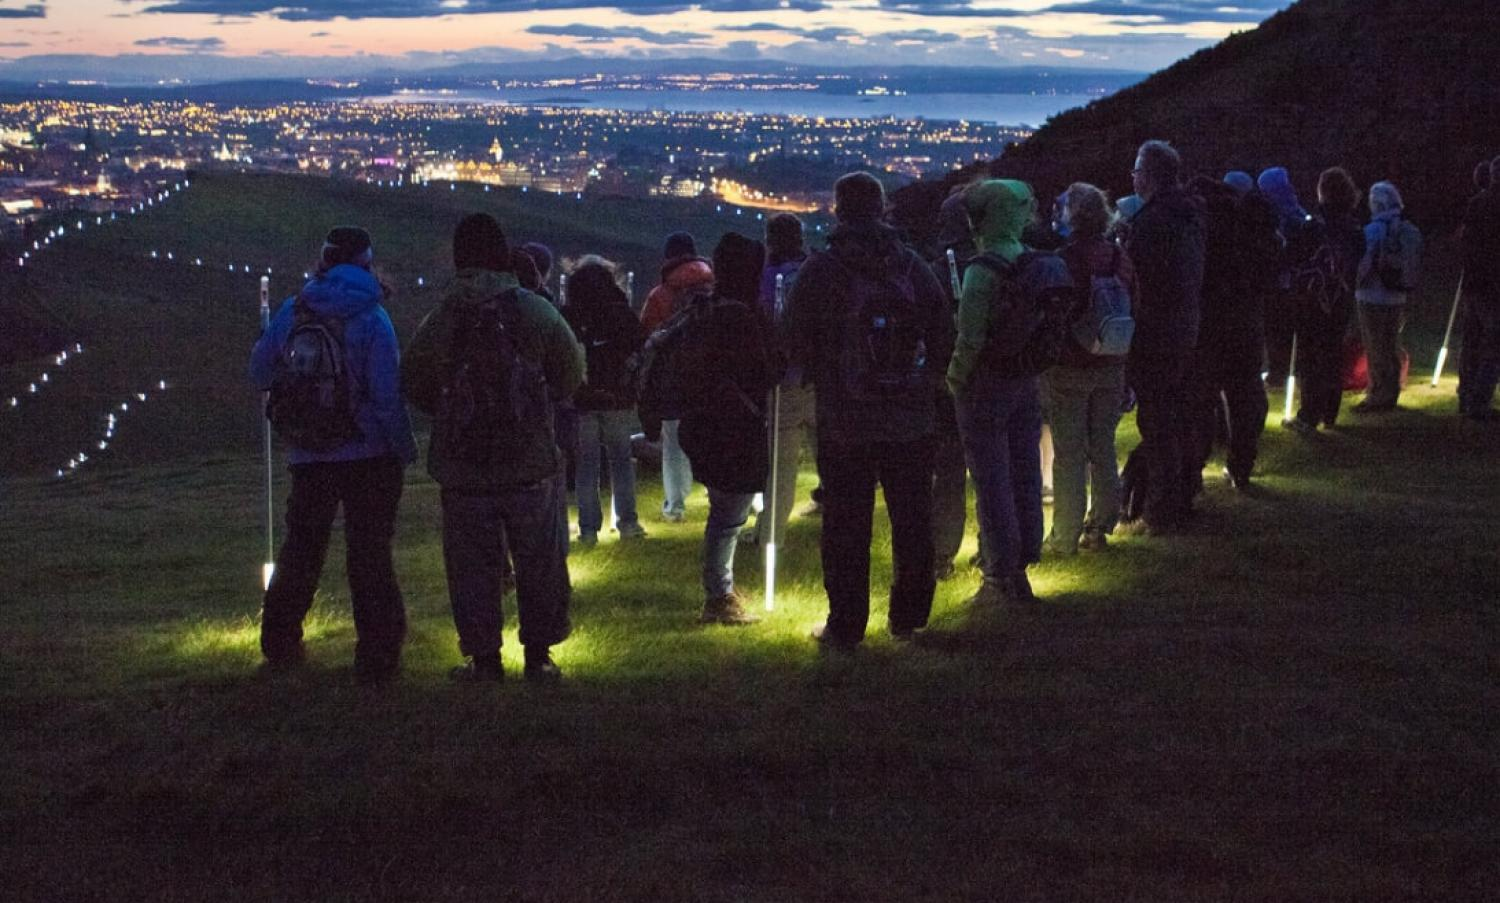 NVA's Speed of Light event on Arthur's Seat, Edinburgh.